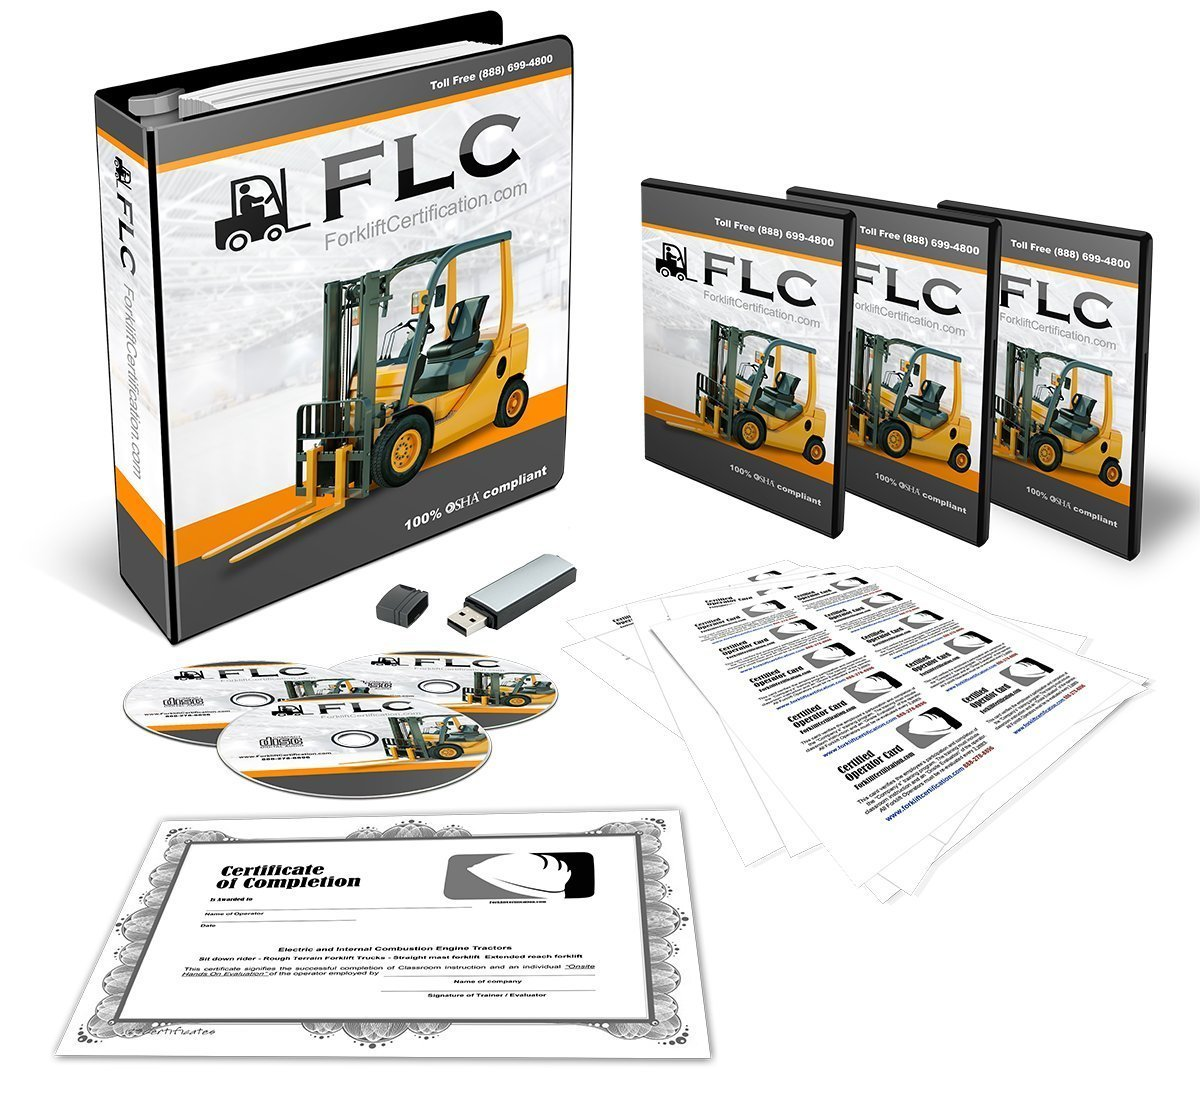 Cheap Forklift Certification Cost Find Forklift Certification Cost